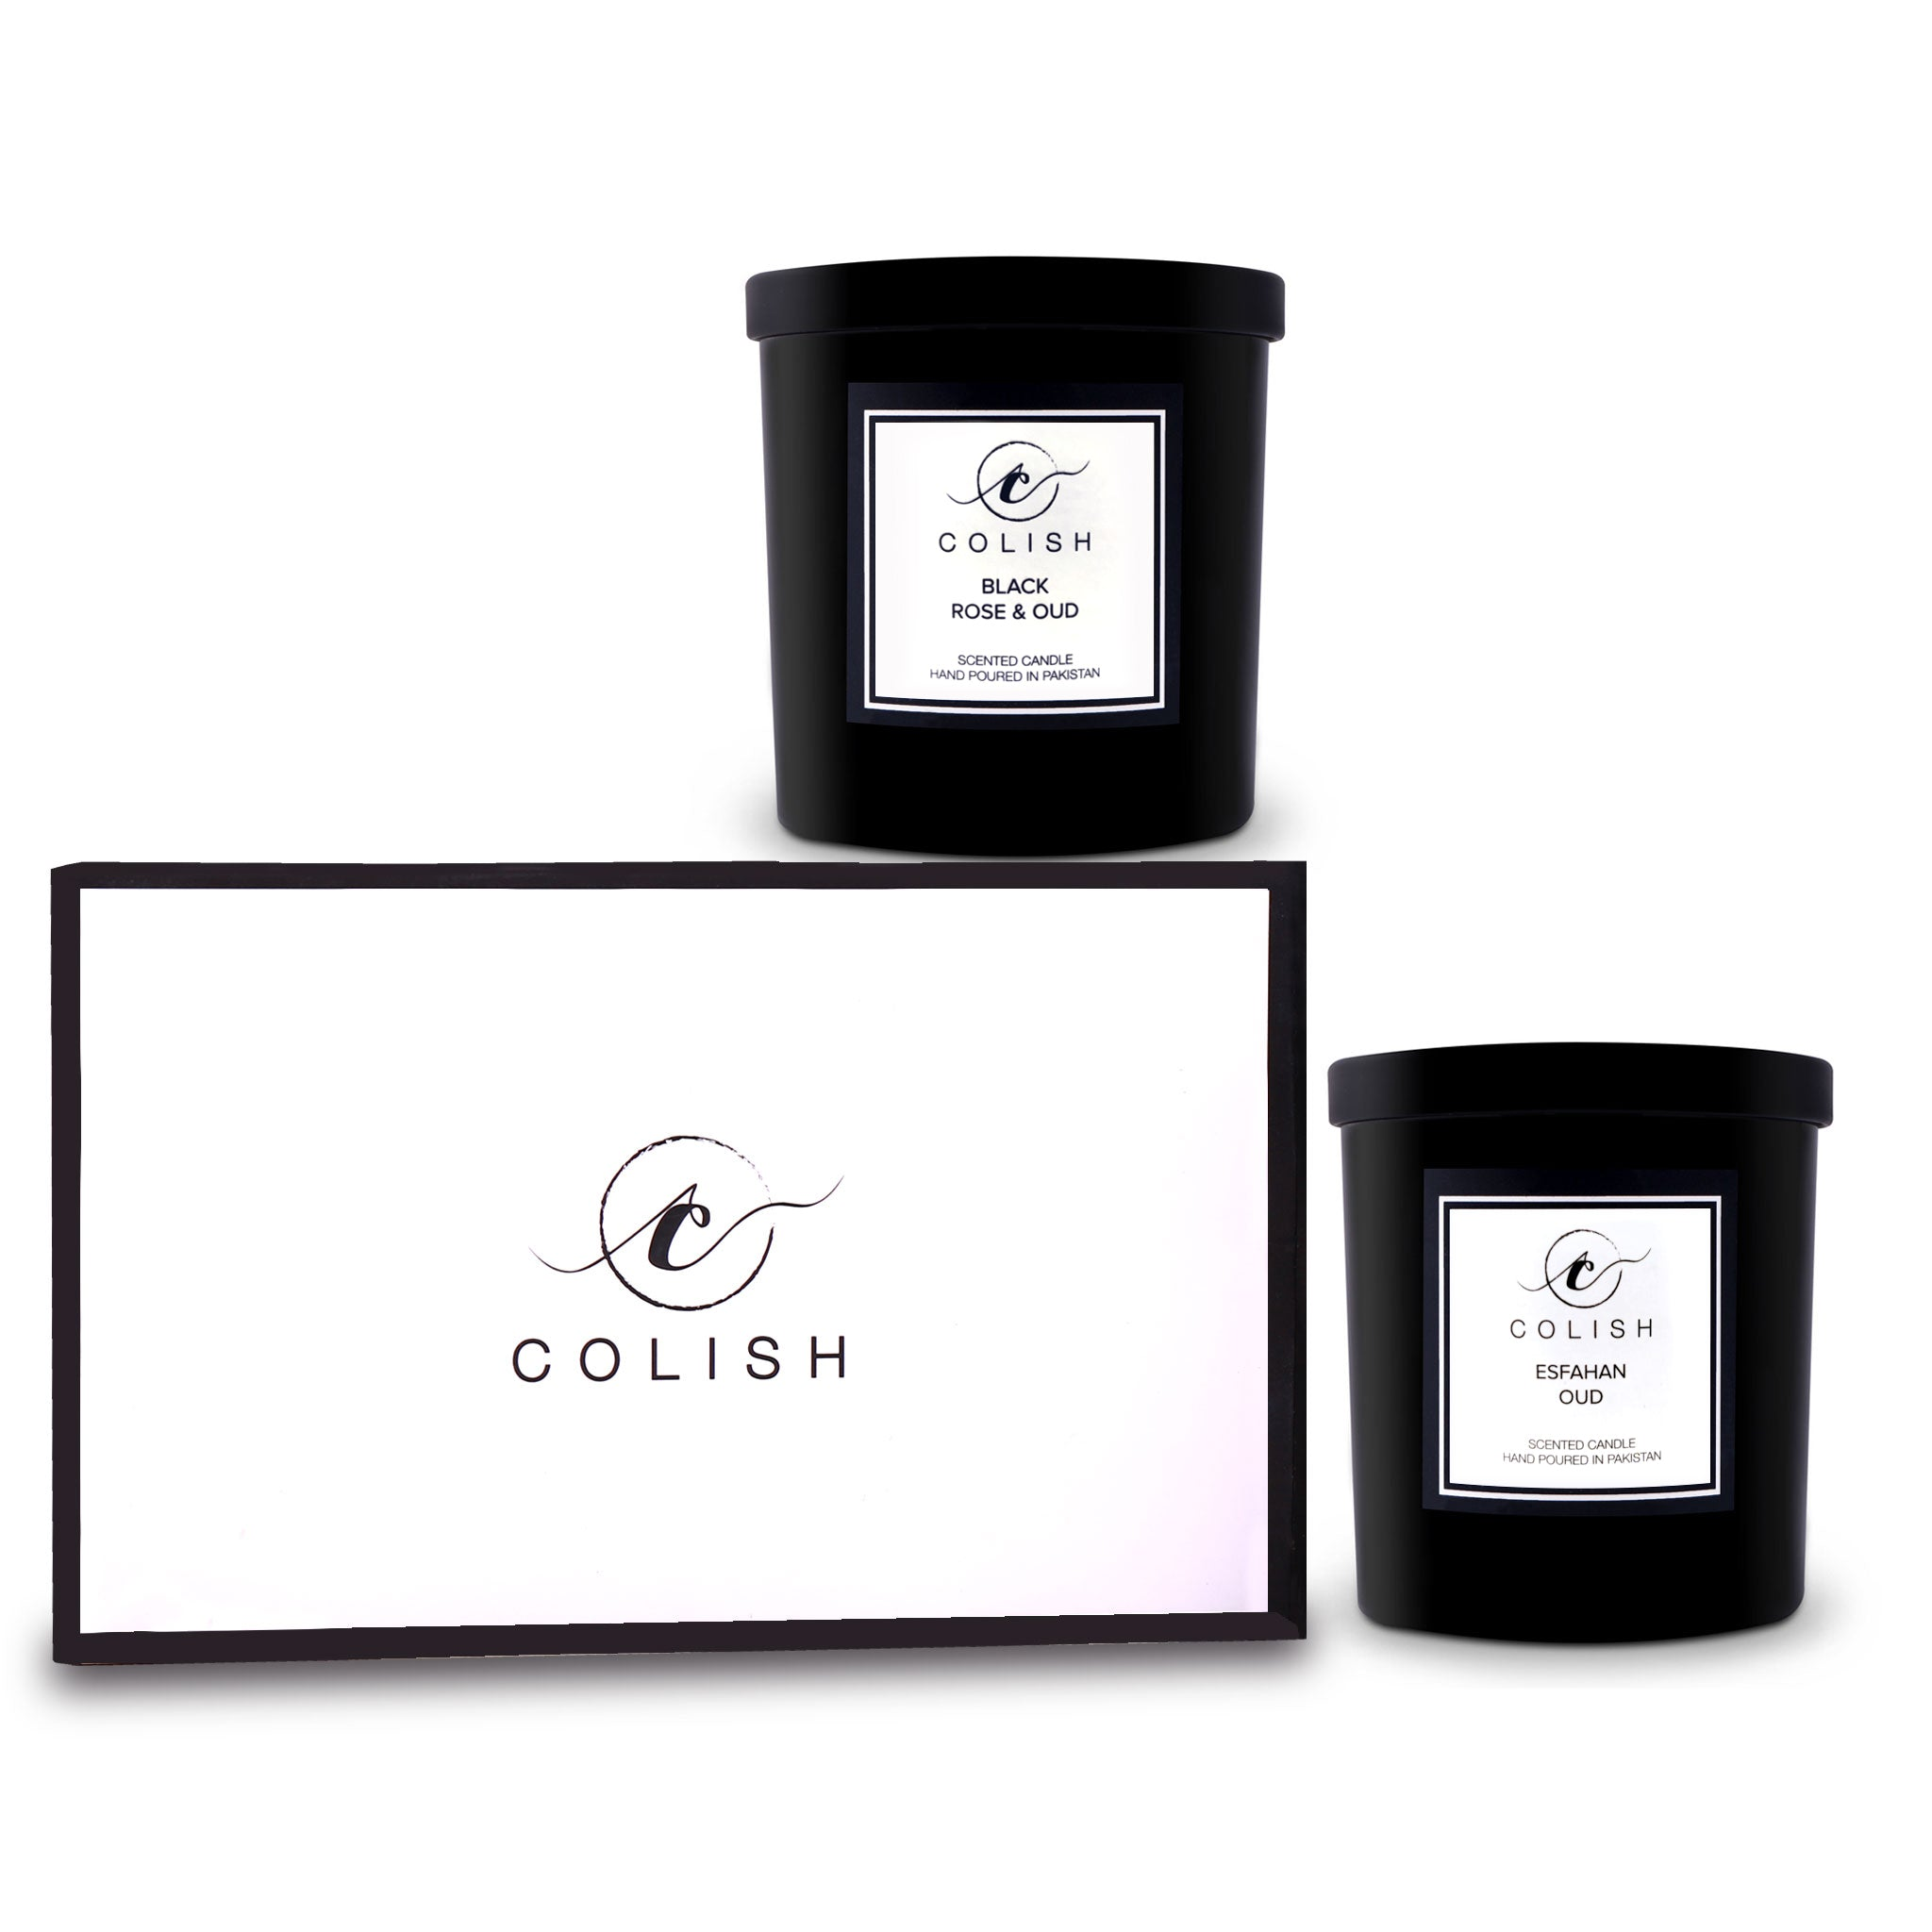 MINI DUO SCENTED CANDLES - SET OF BLACKROSE & OUD & ESFAHAN OUD